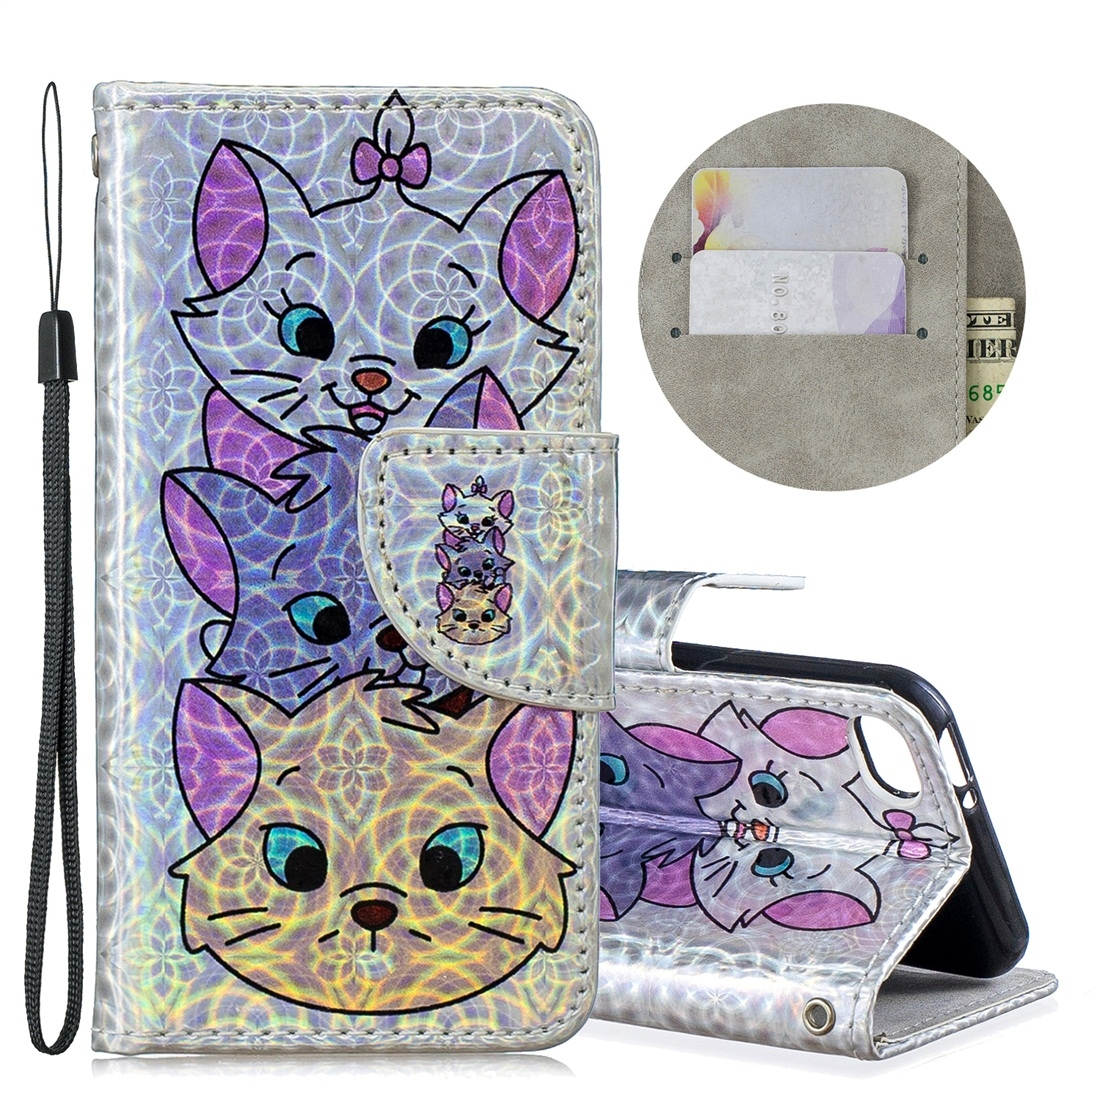 Dazzle Colorful Leather Case w/ Slim Profile & Lanyard For iPod Touch 5/6 (Three Cats)